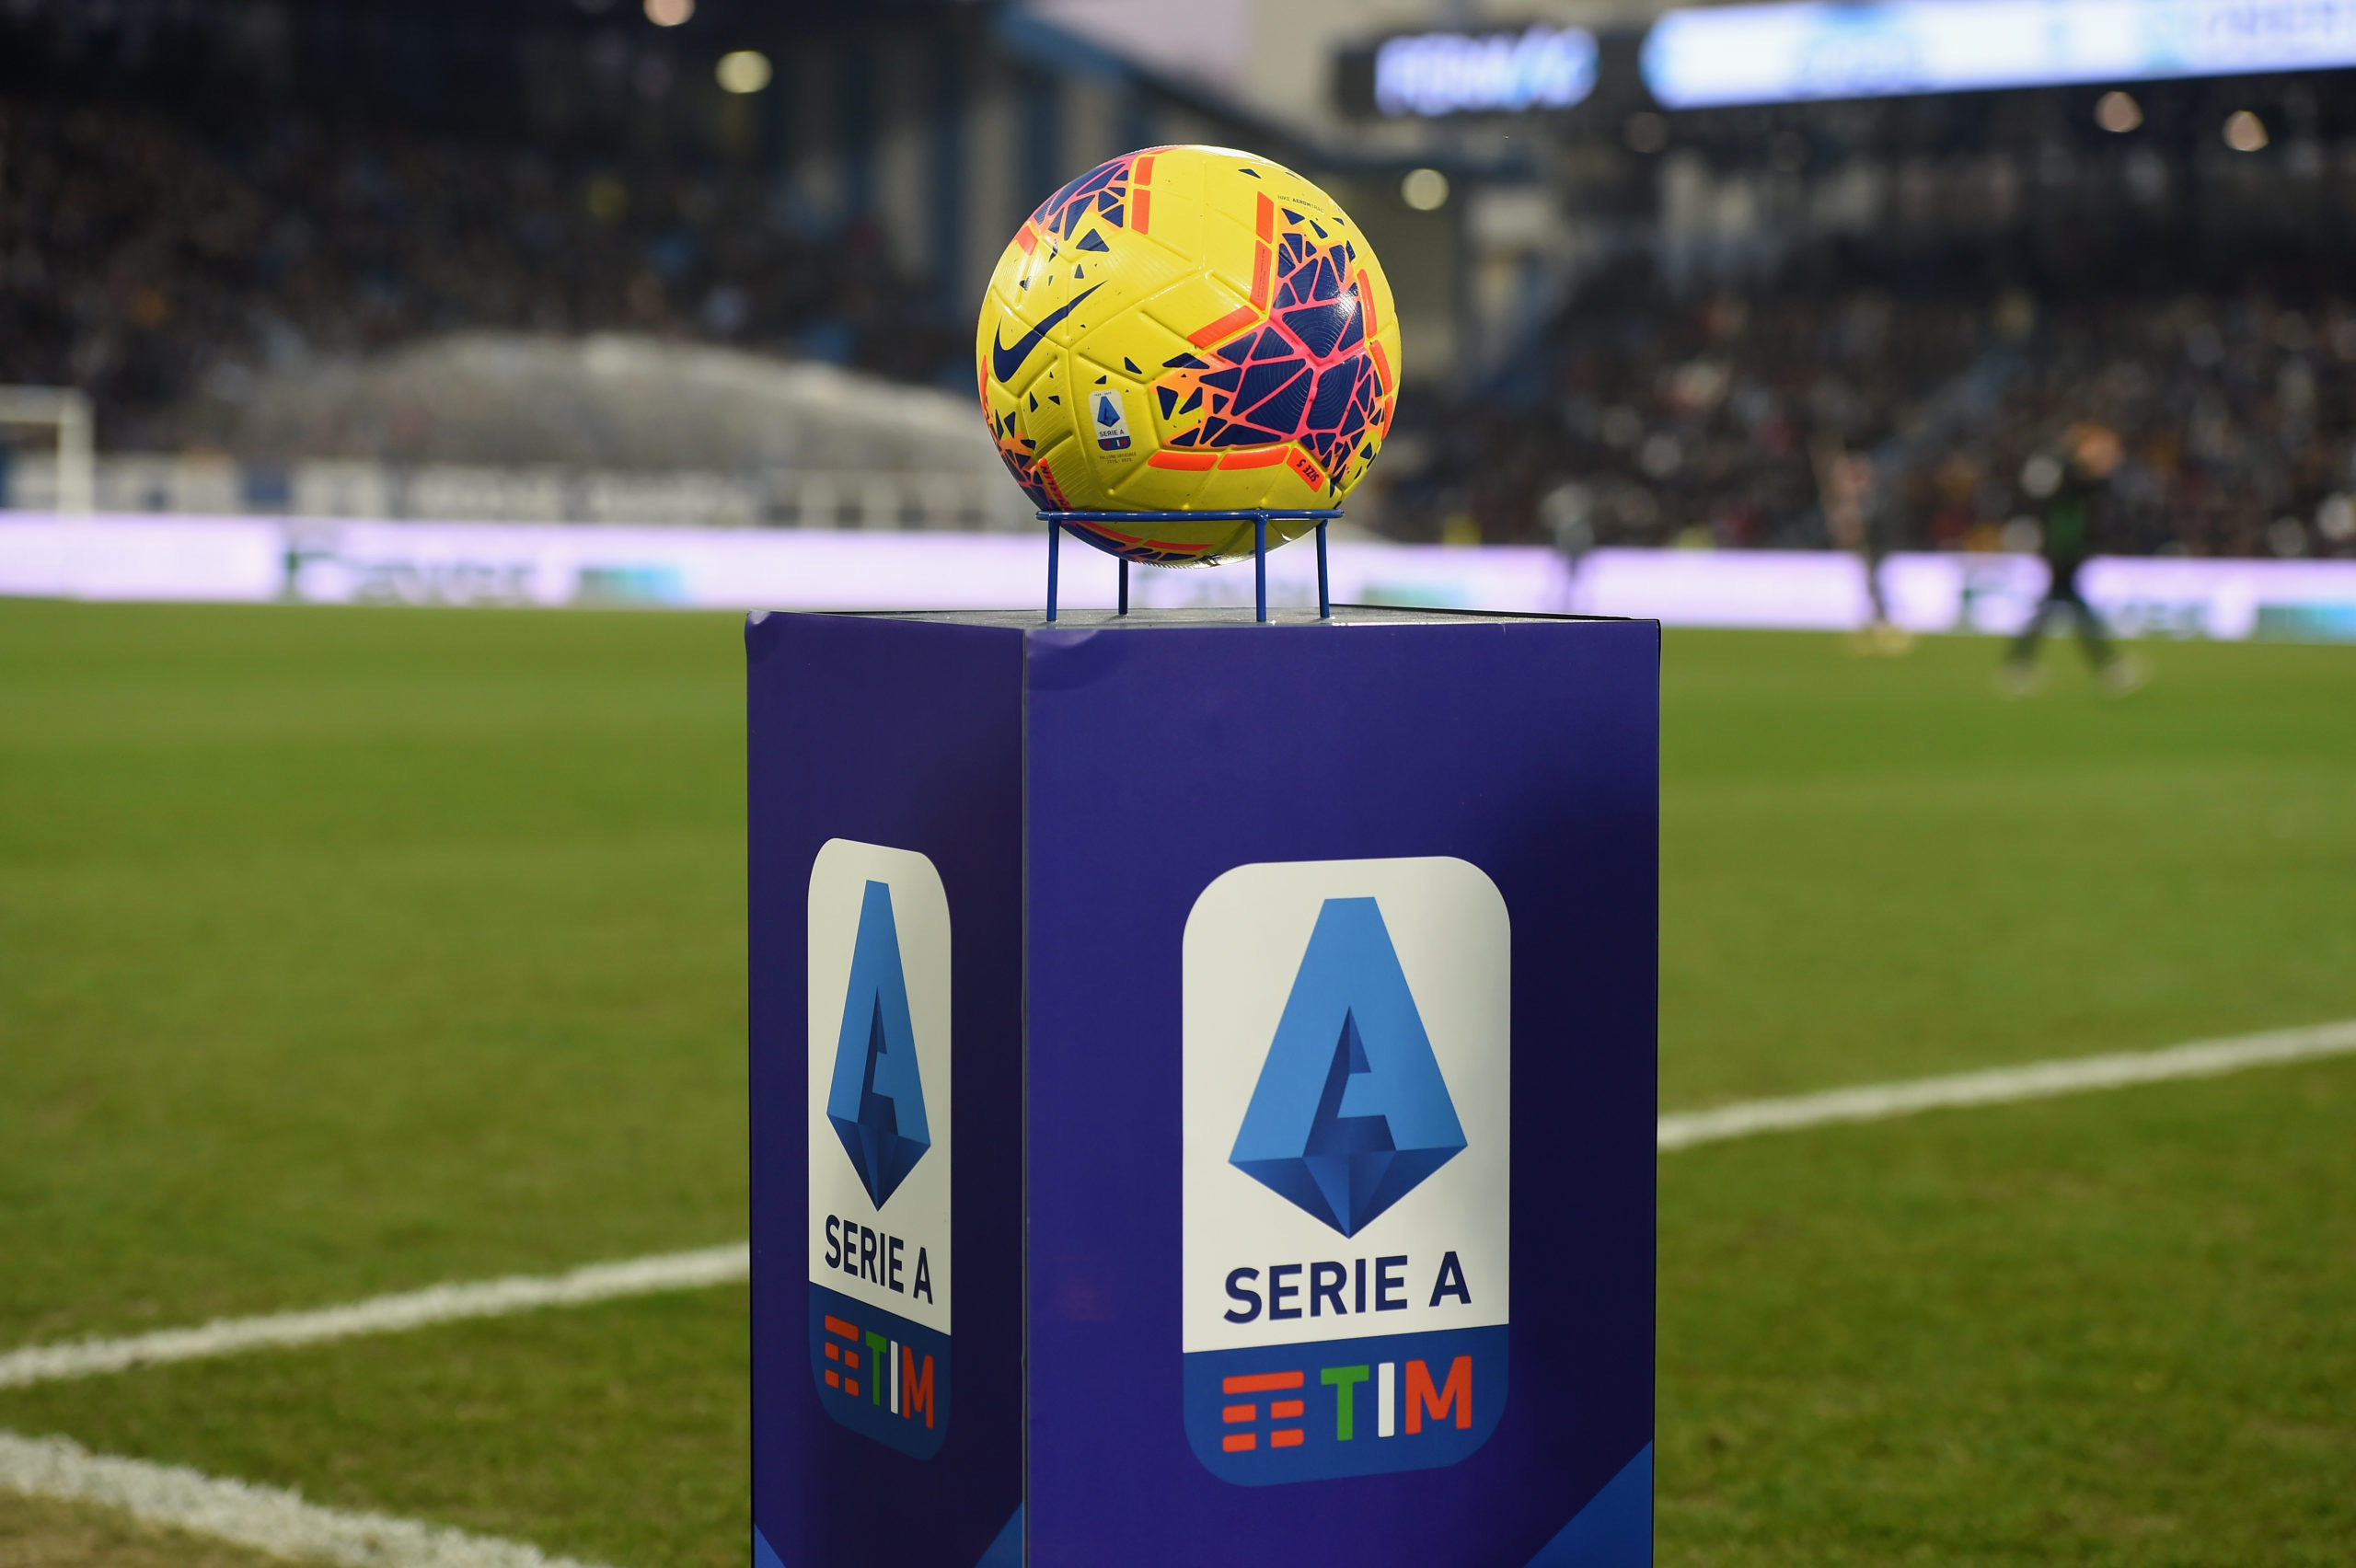 nigerian-immigration-officers-bop-daddy-bopdaddy-challenge-serie-a-latest-news-global-world-stories-wednesday-may-2020-style-rave